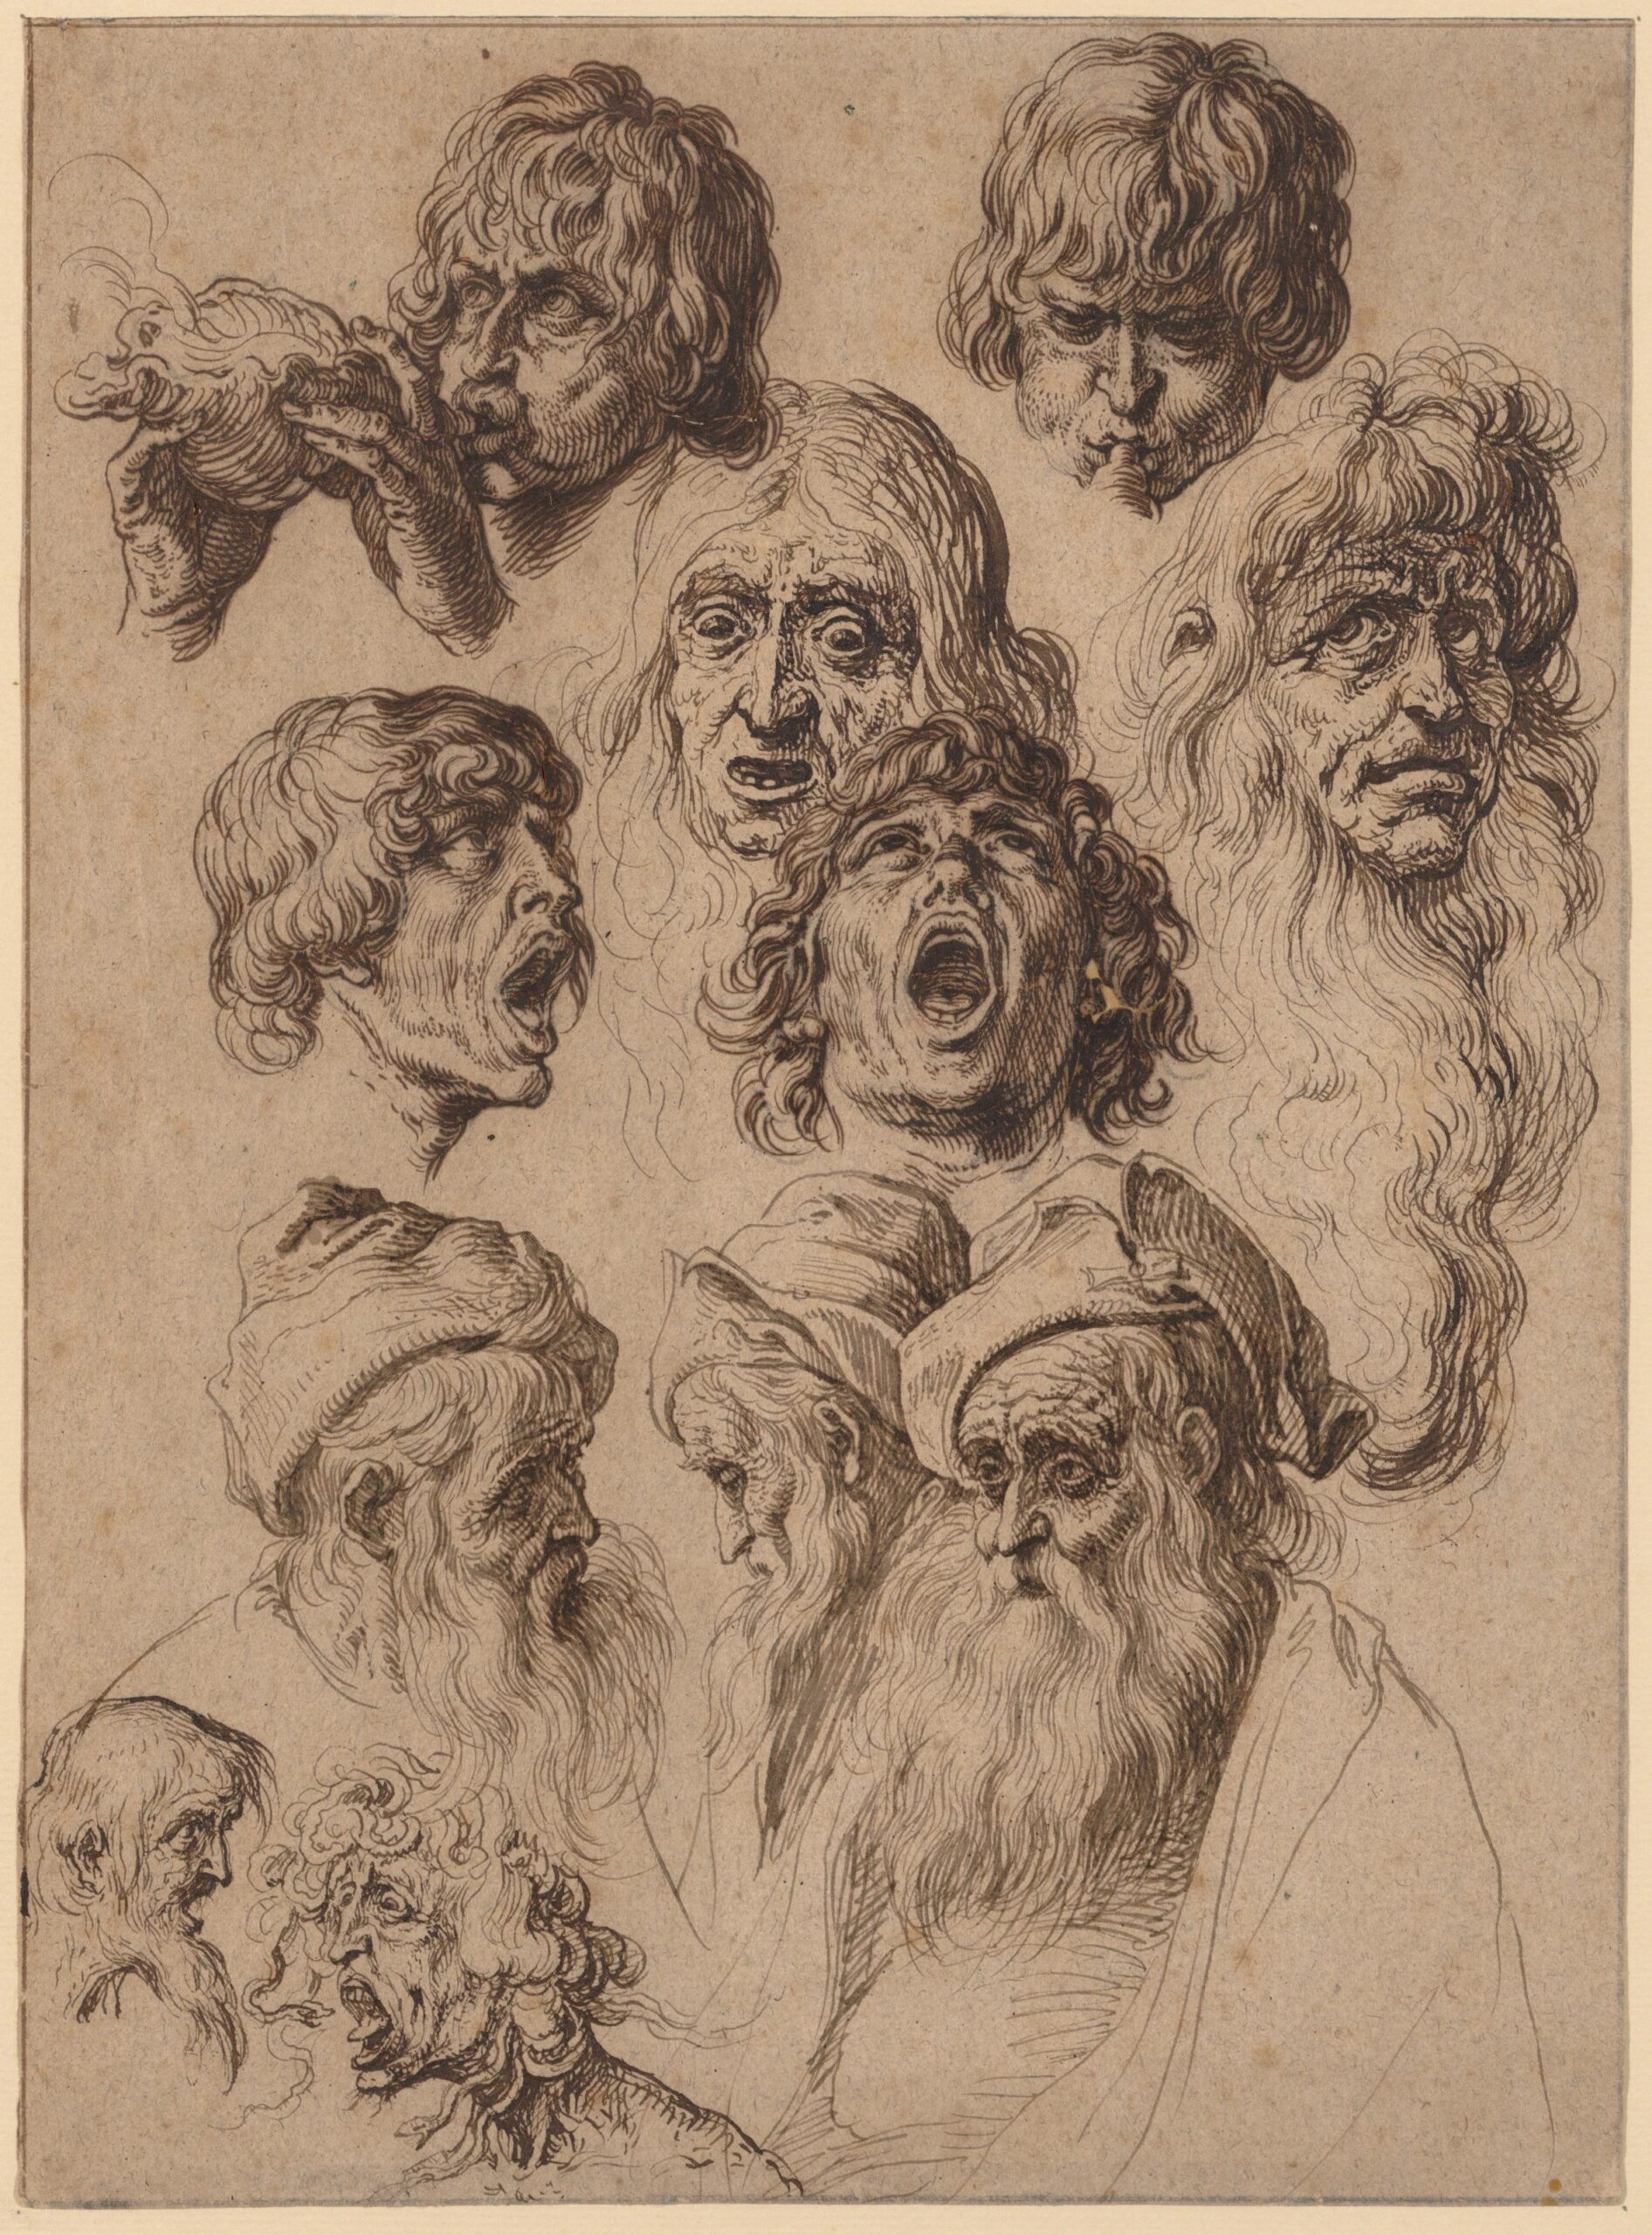 Jacob de Gheyn II (1565-1629), Study of eleven heads , ca. 1604-1620s. The Metropolitan Museum of Art, New York, purchase, Harris Brisbane Dick Fund, Frits and Rita Markus Fund, and Charles and Jessie Price Gift